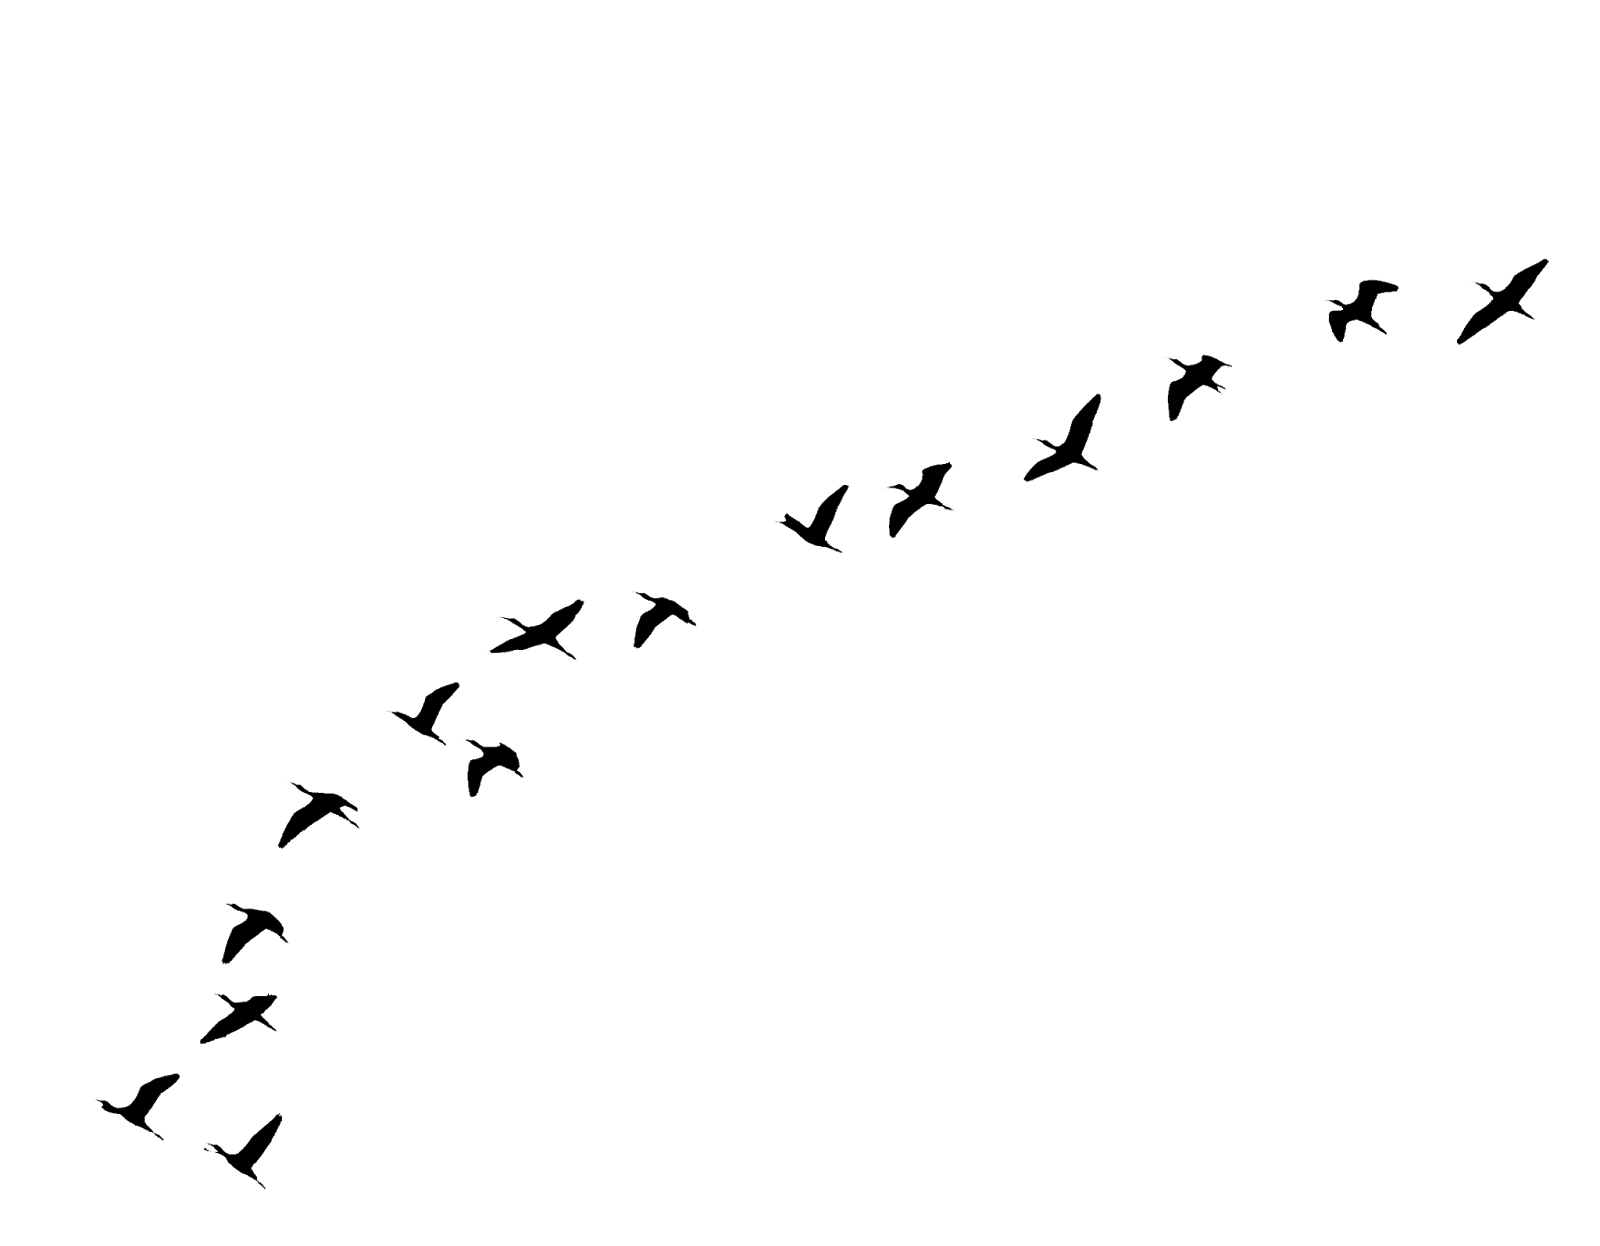 Transparent png css background image